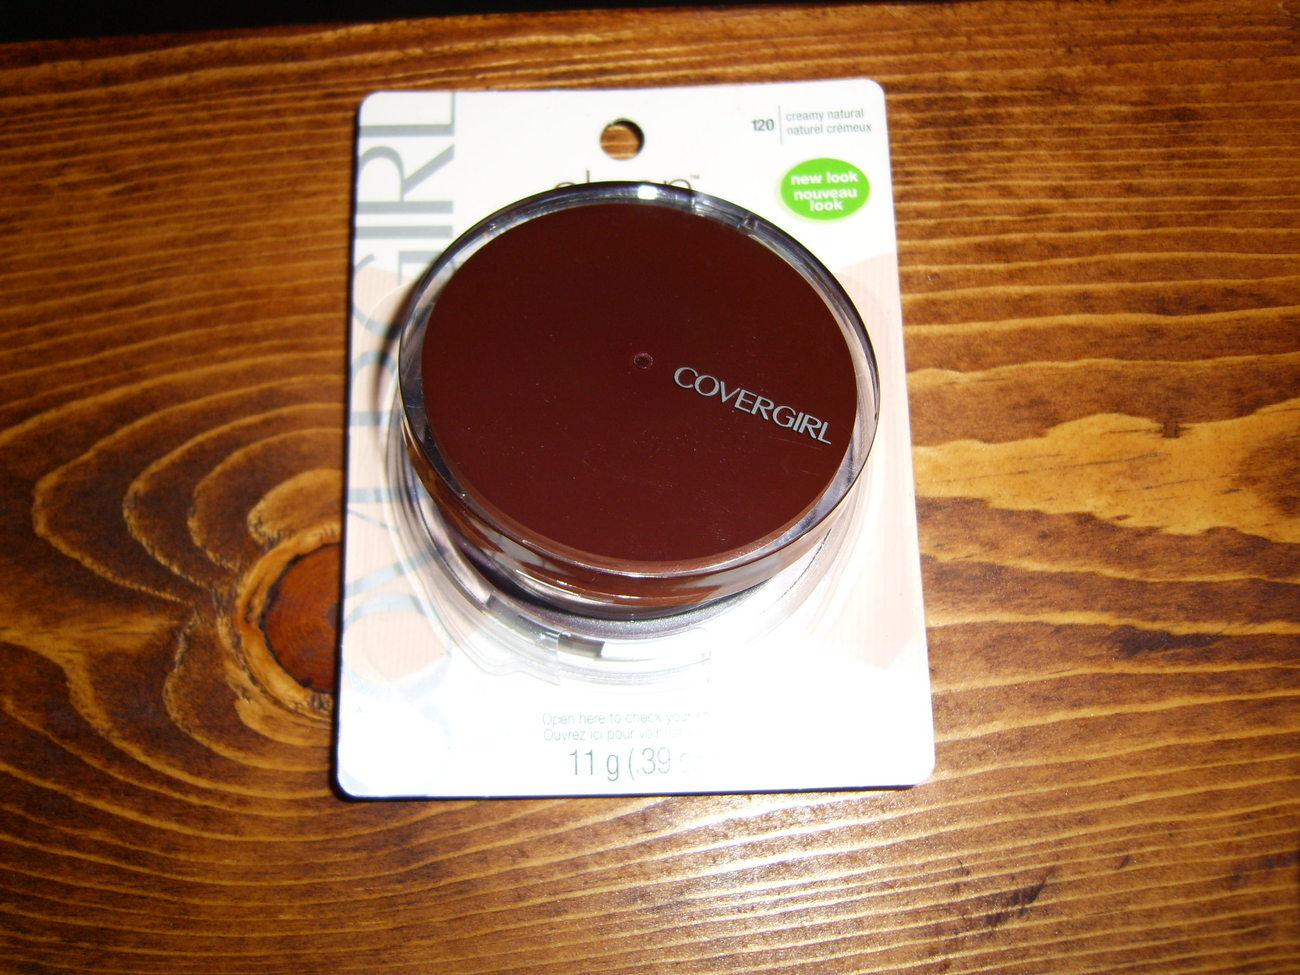 Covergirl Clean pressed powder in creamy natural new